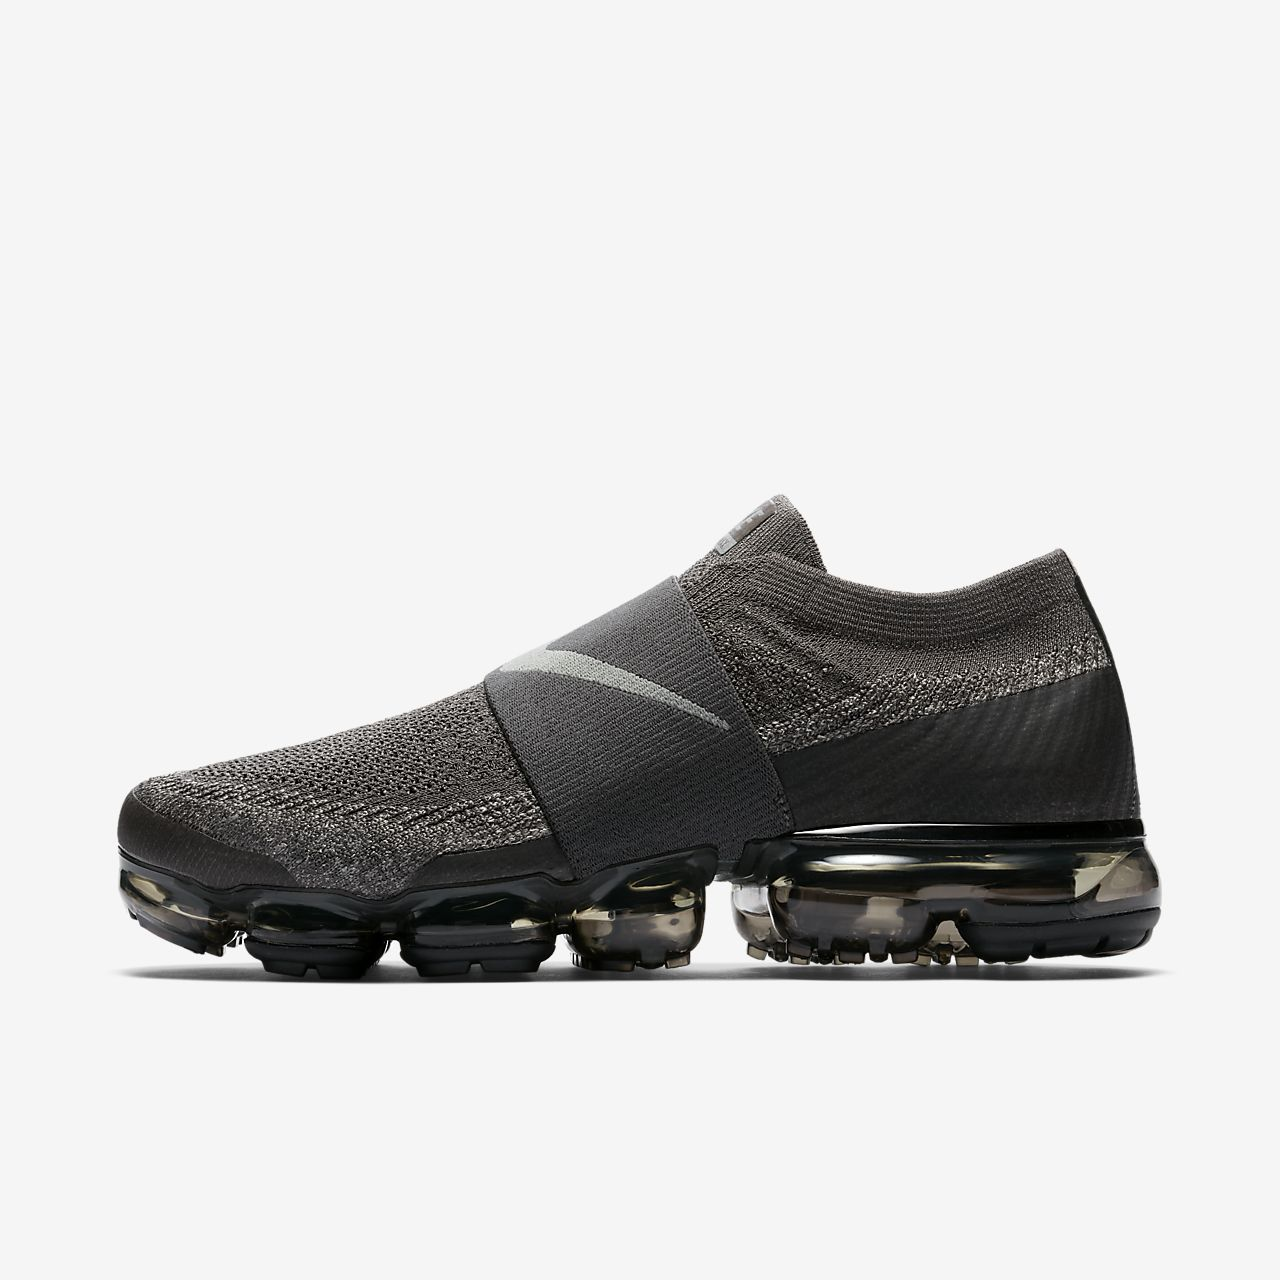 buy popular 13c4c 0f5b9 Low Resolution Nike Air VaporMax Flyknit Moc Mens Shoe Nike Air VaporMax  Flyknit Moc Mens Shoe